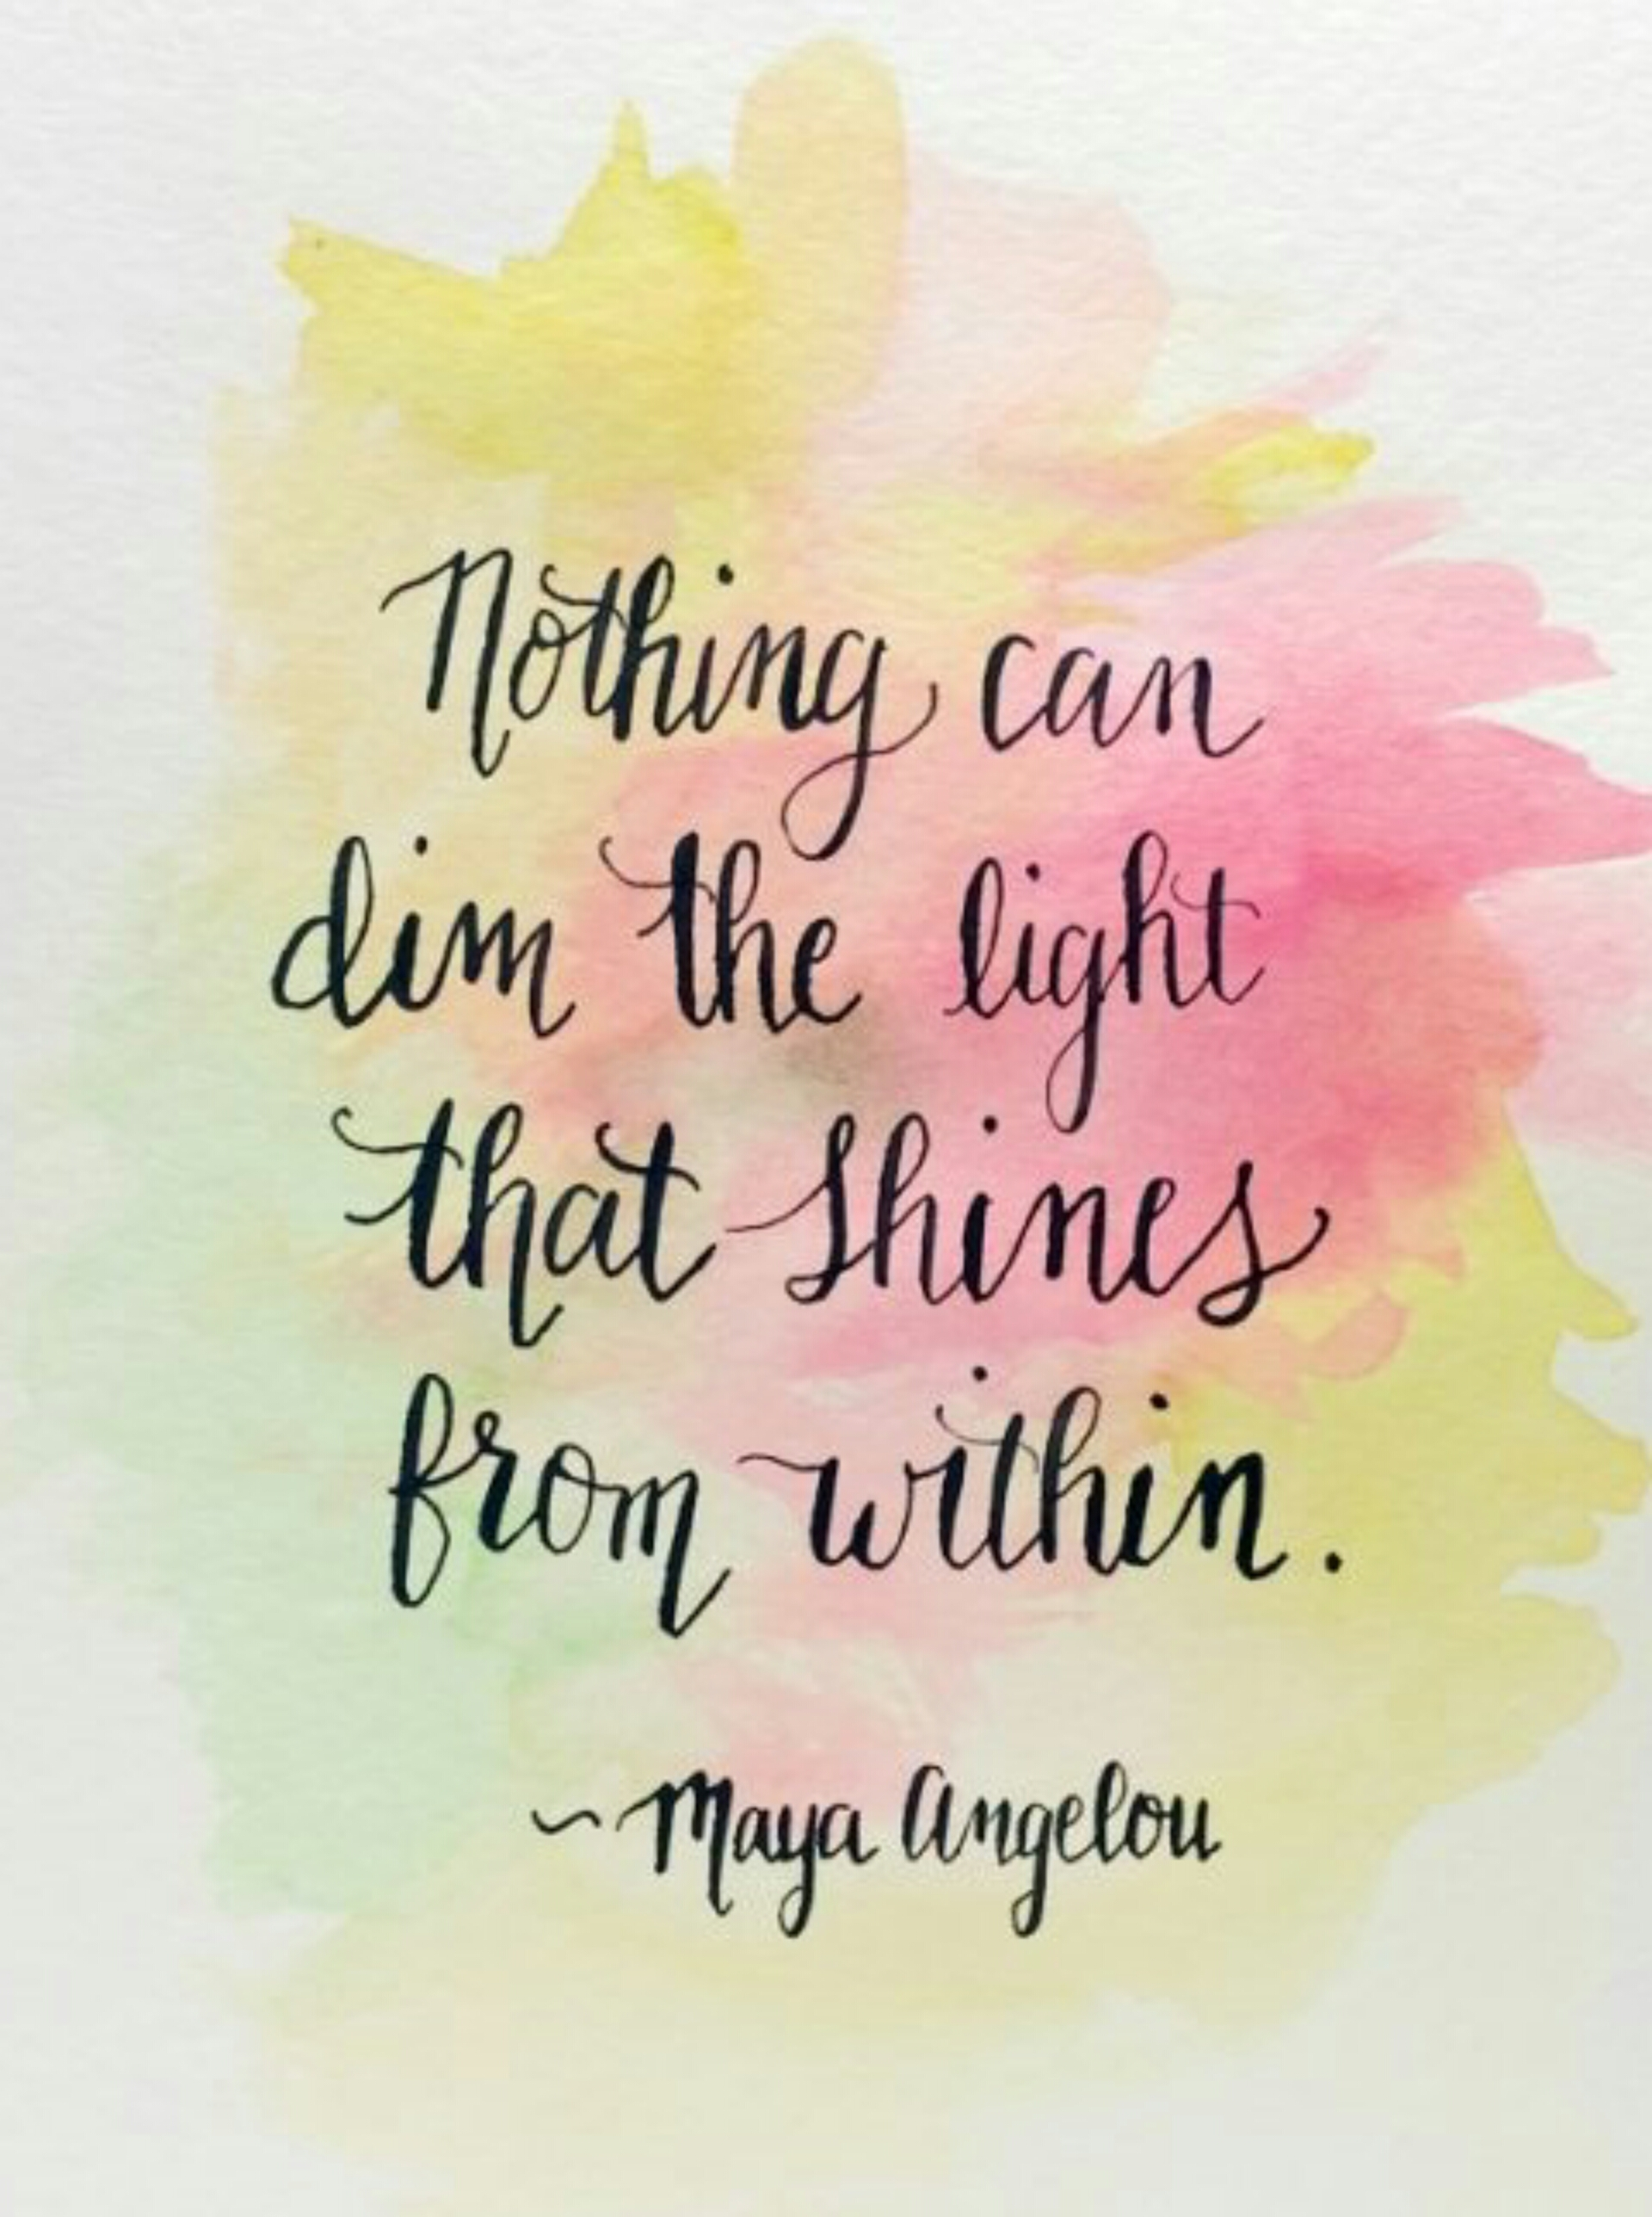 Inspirational Quotes About Light